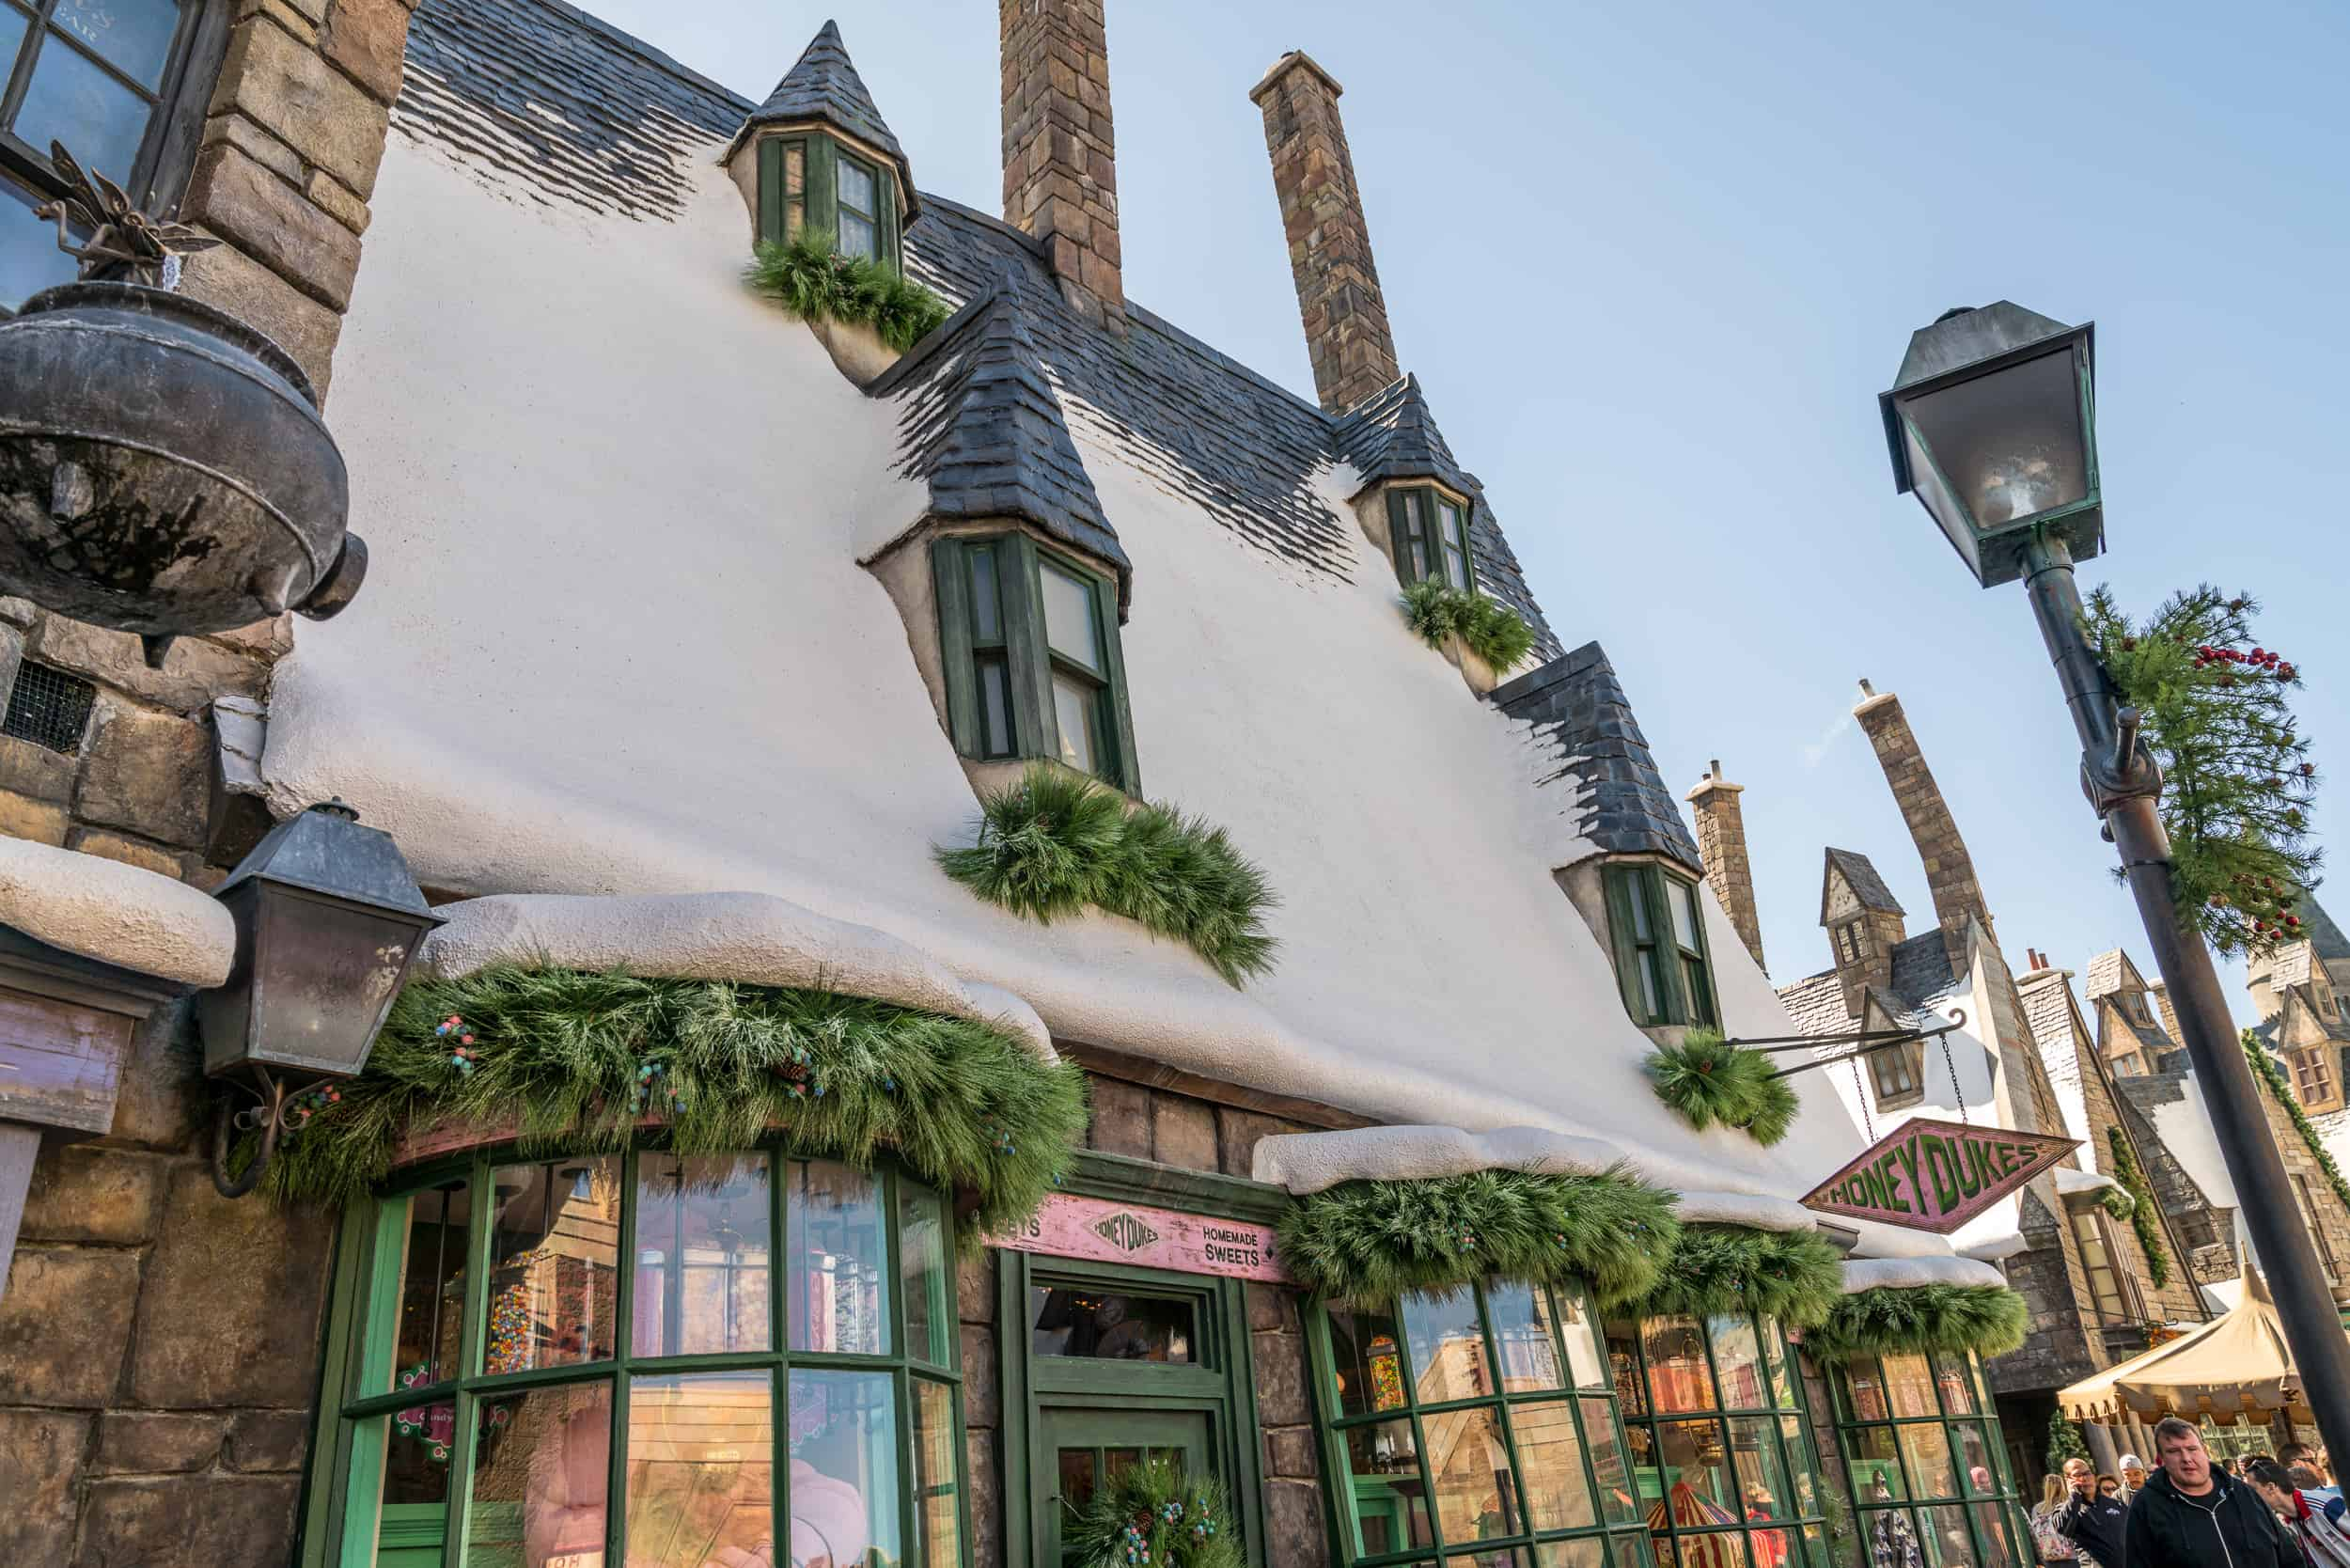 Our 3 favorite Hogsmeade areas decorated for a Harry Potter Christmas